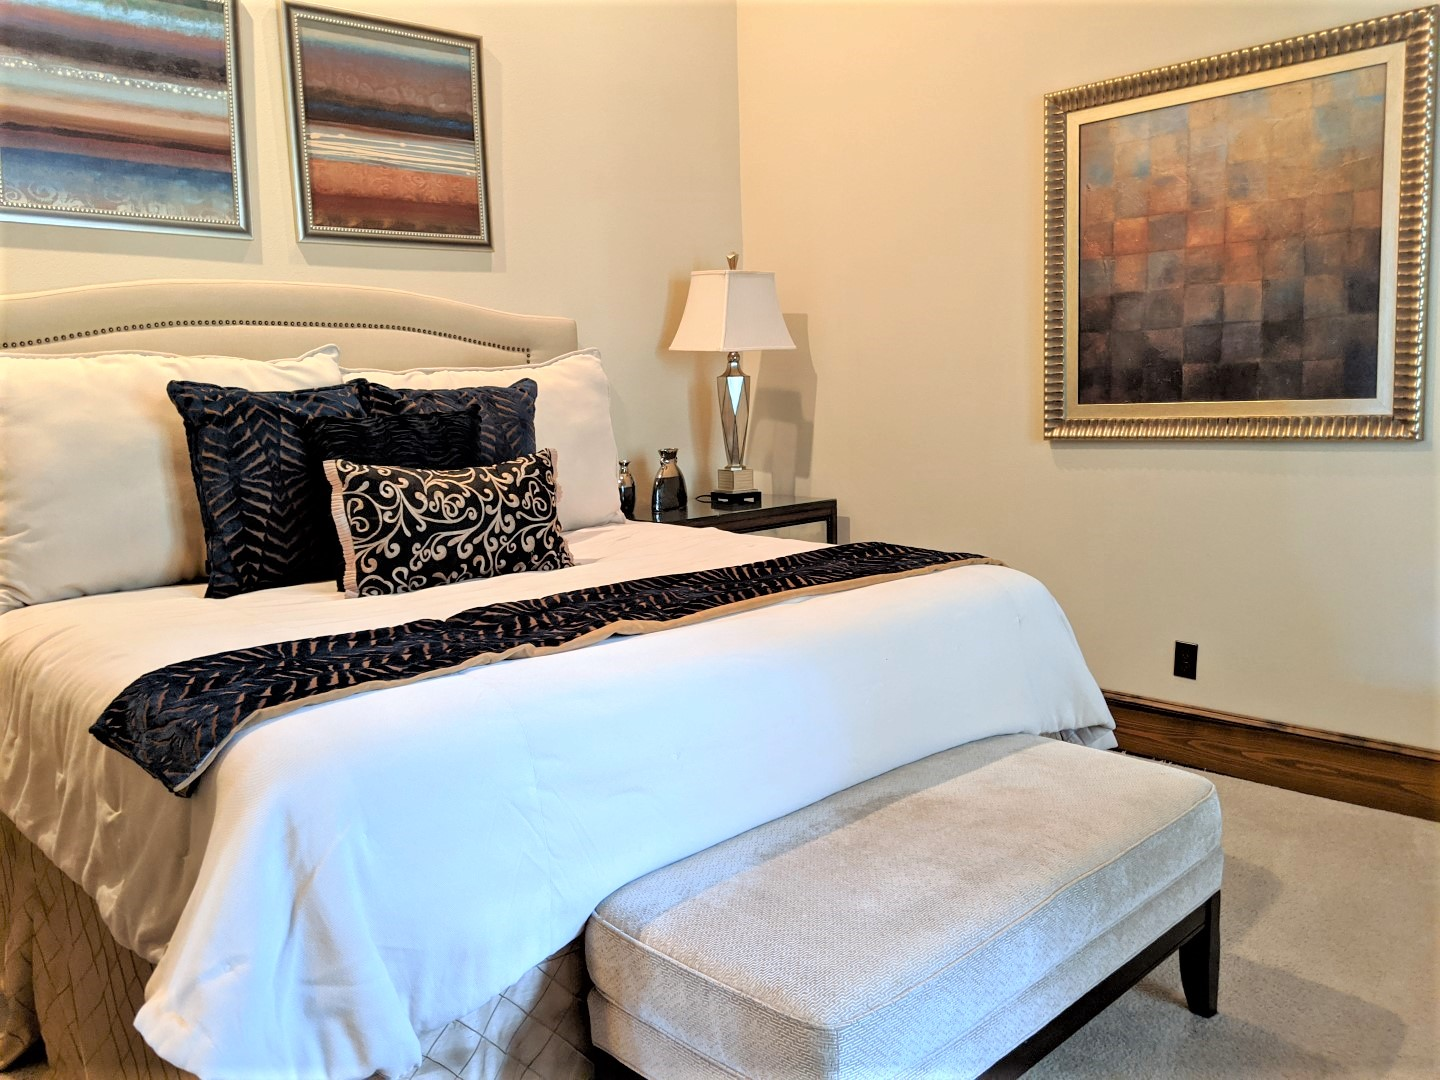 kissimmee vacation home bedrooms